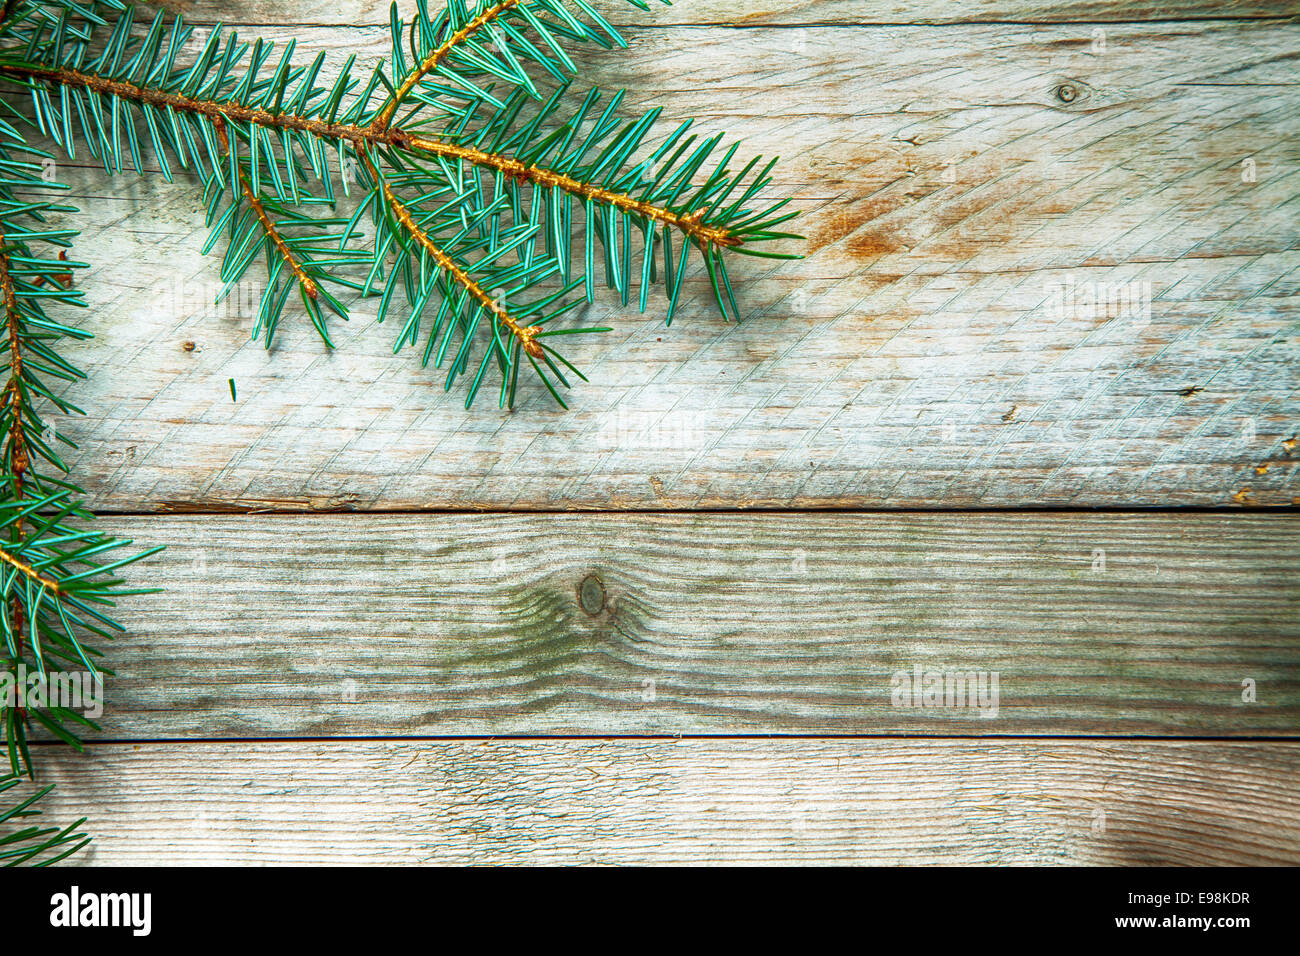 Seasonal Background With A Pine Branch Arranged As A Corner Border On Stock Photo Alamy